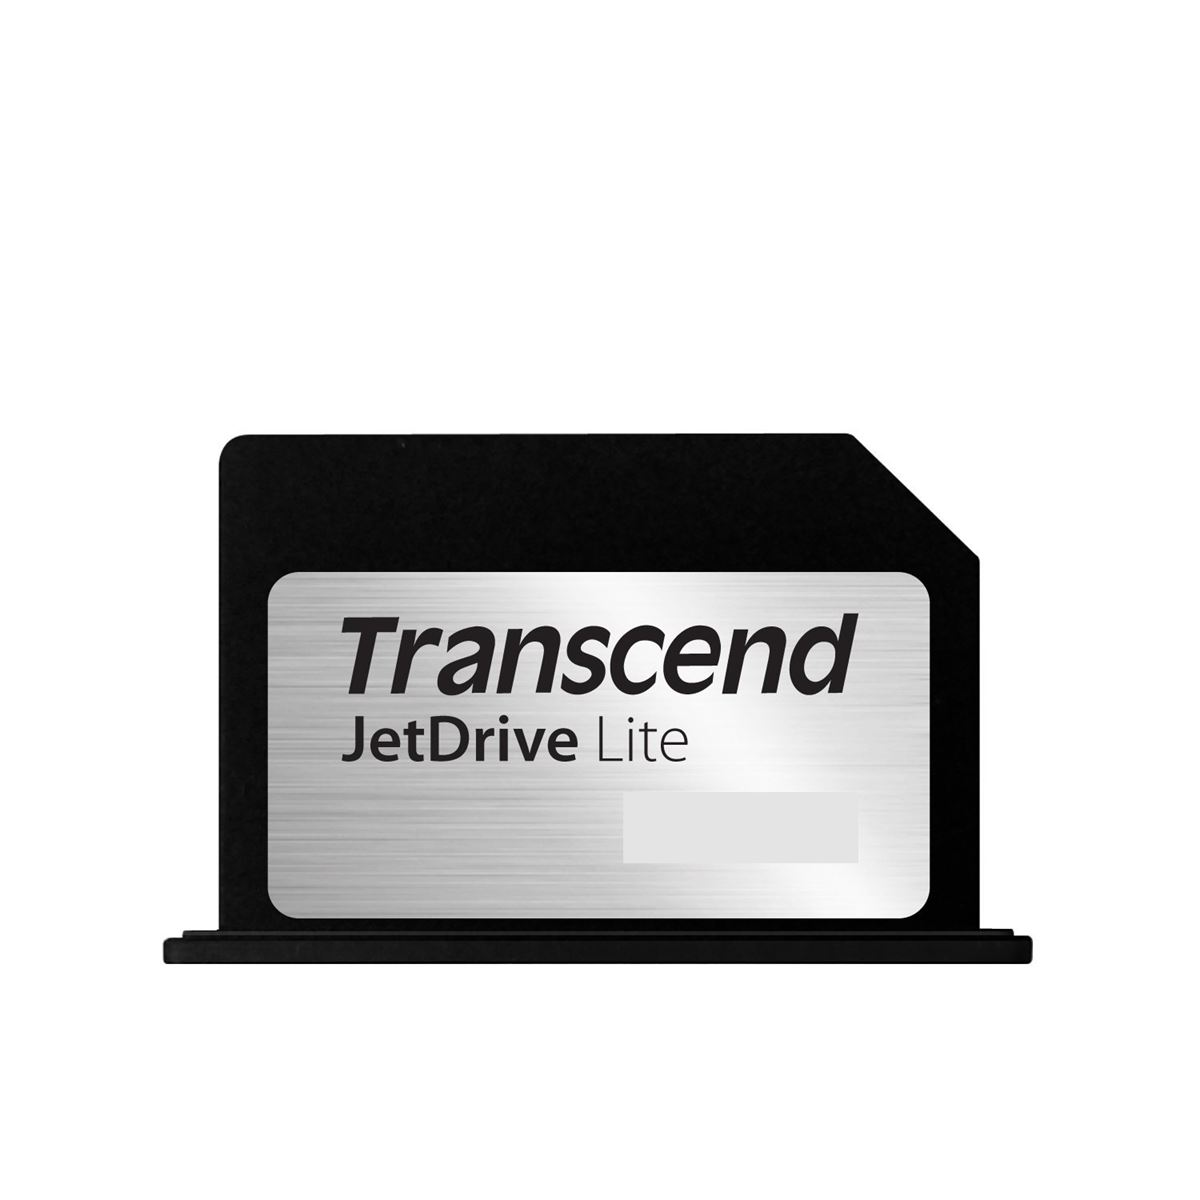 Transcend JetDrive Lite 330 64GB Storage Expansion Card For 13 Inch Macbook Pro With Retina Display